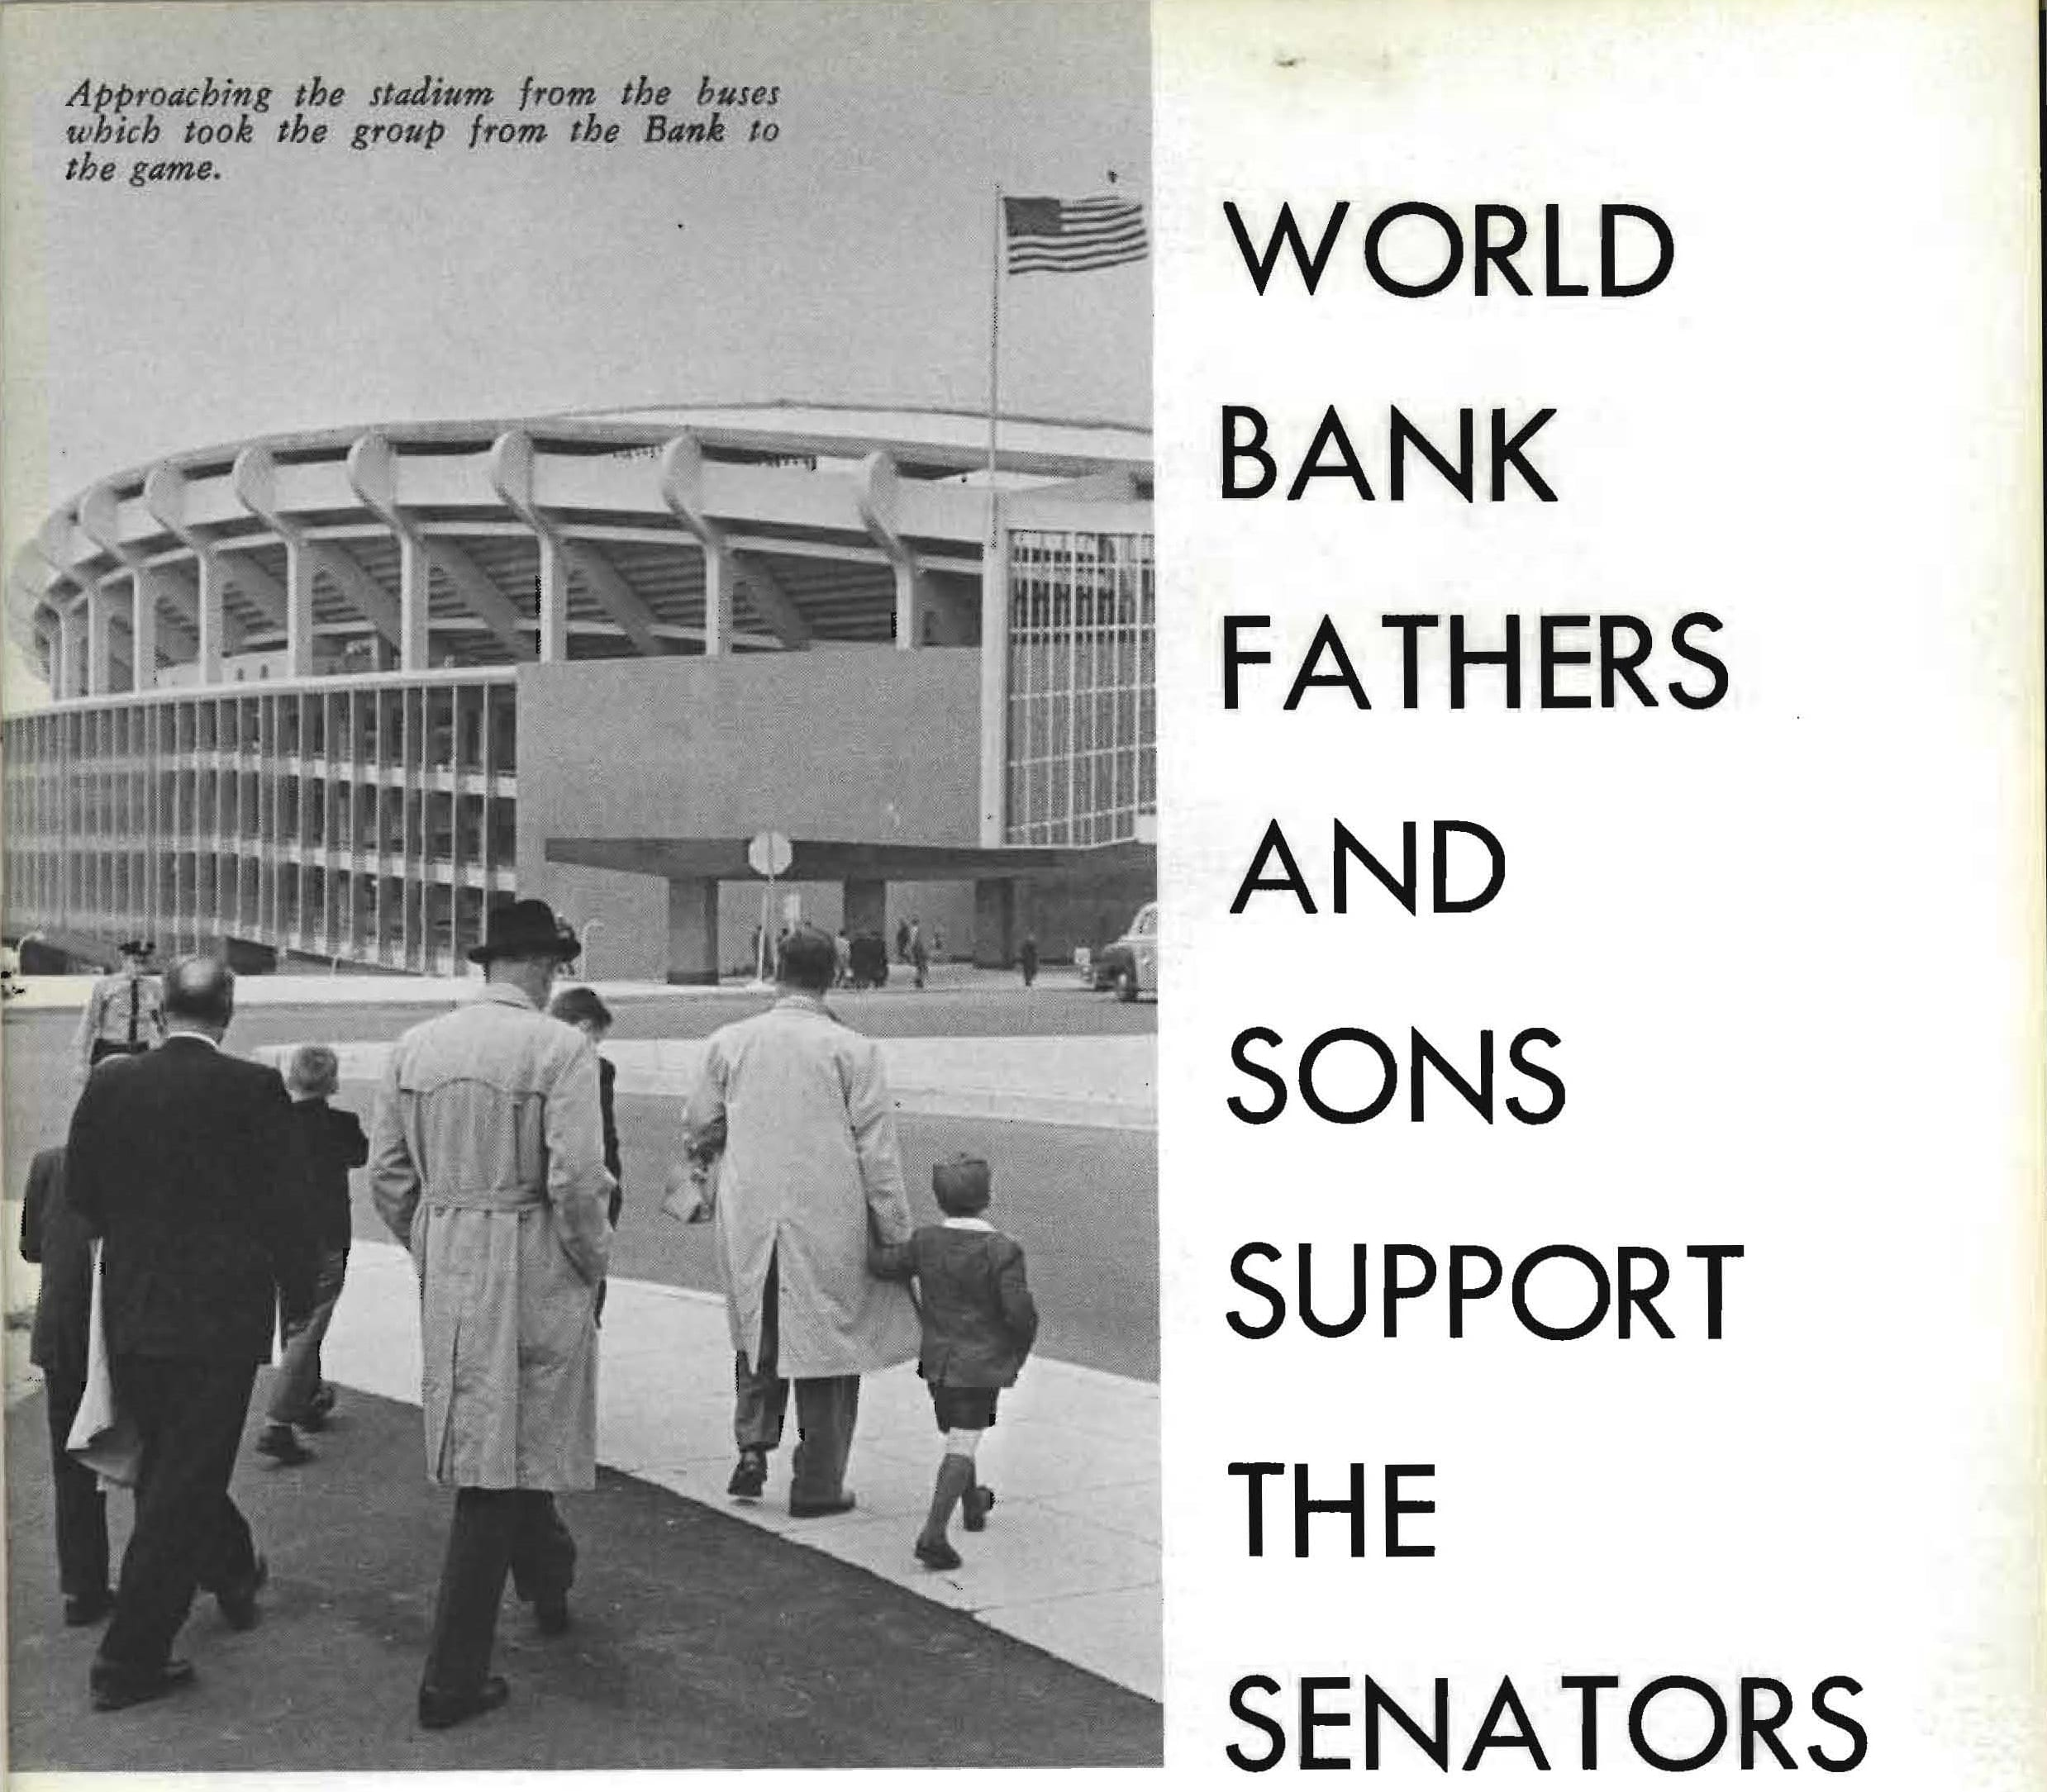 World Bank fathers and sons support the Senators